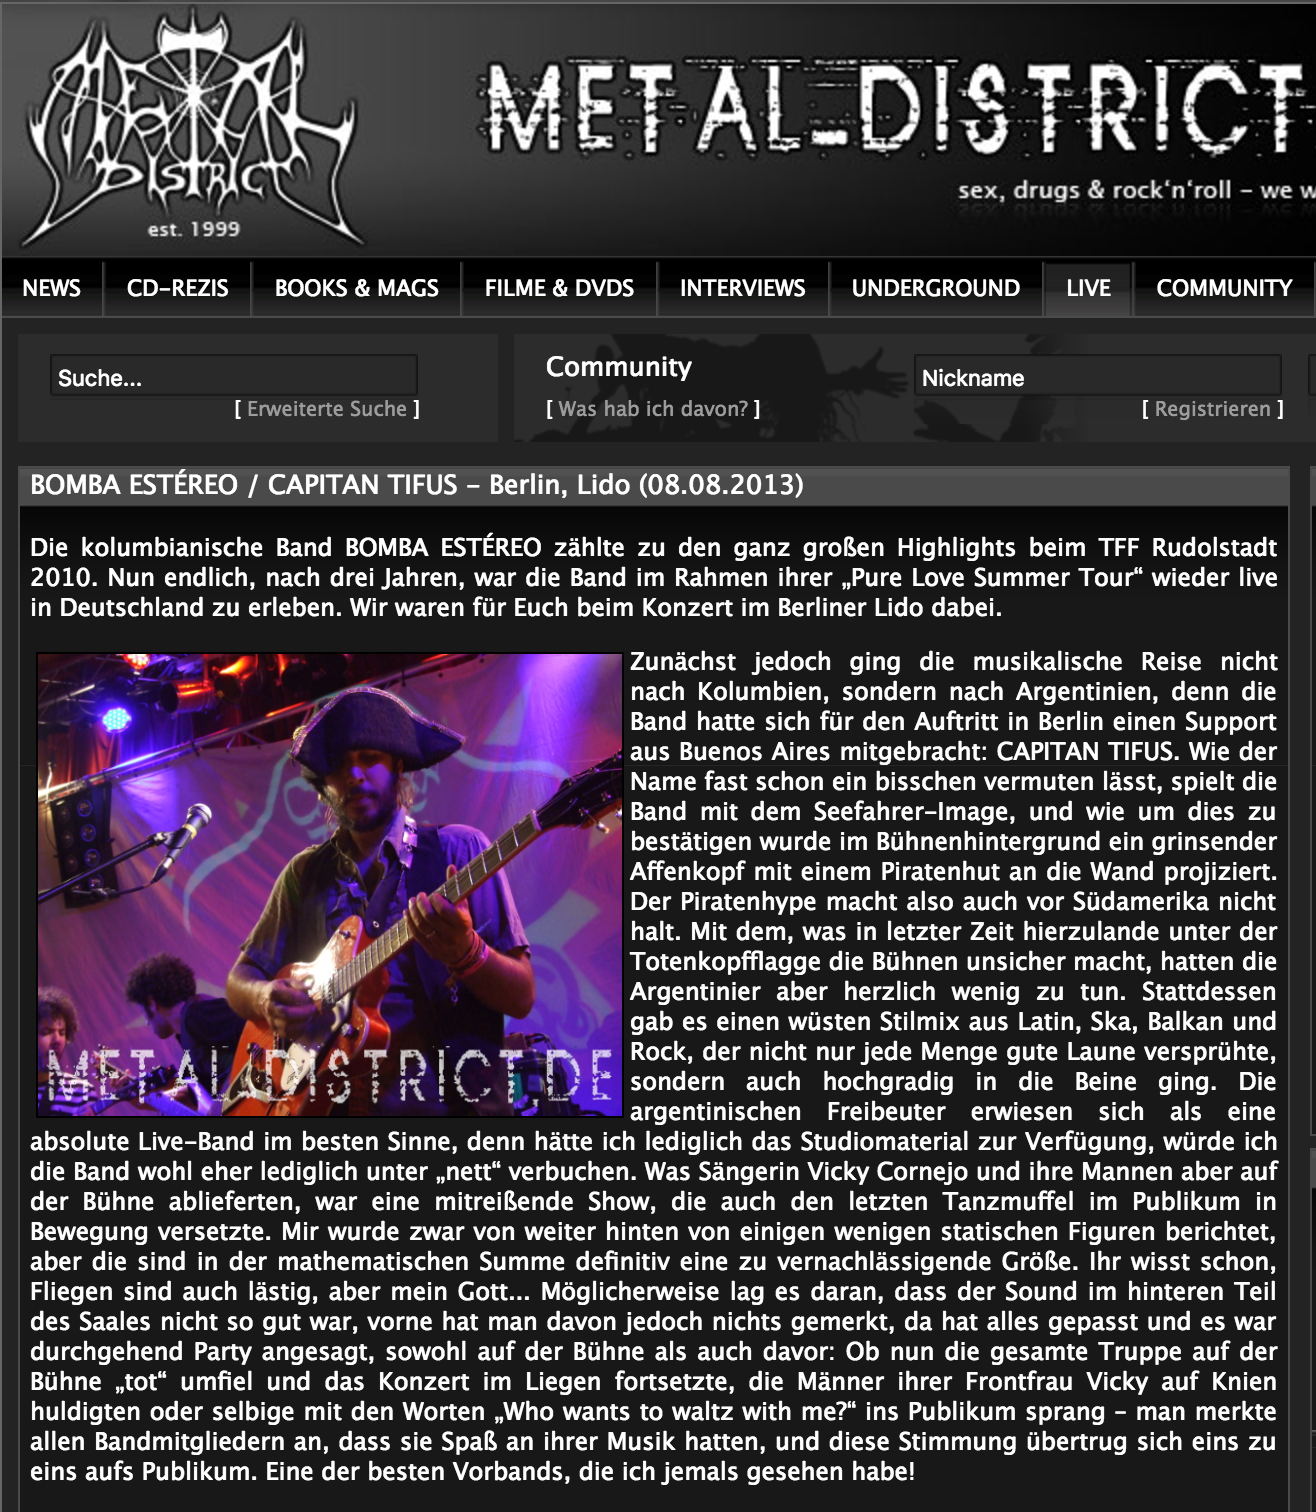 METAL-DISTRICT